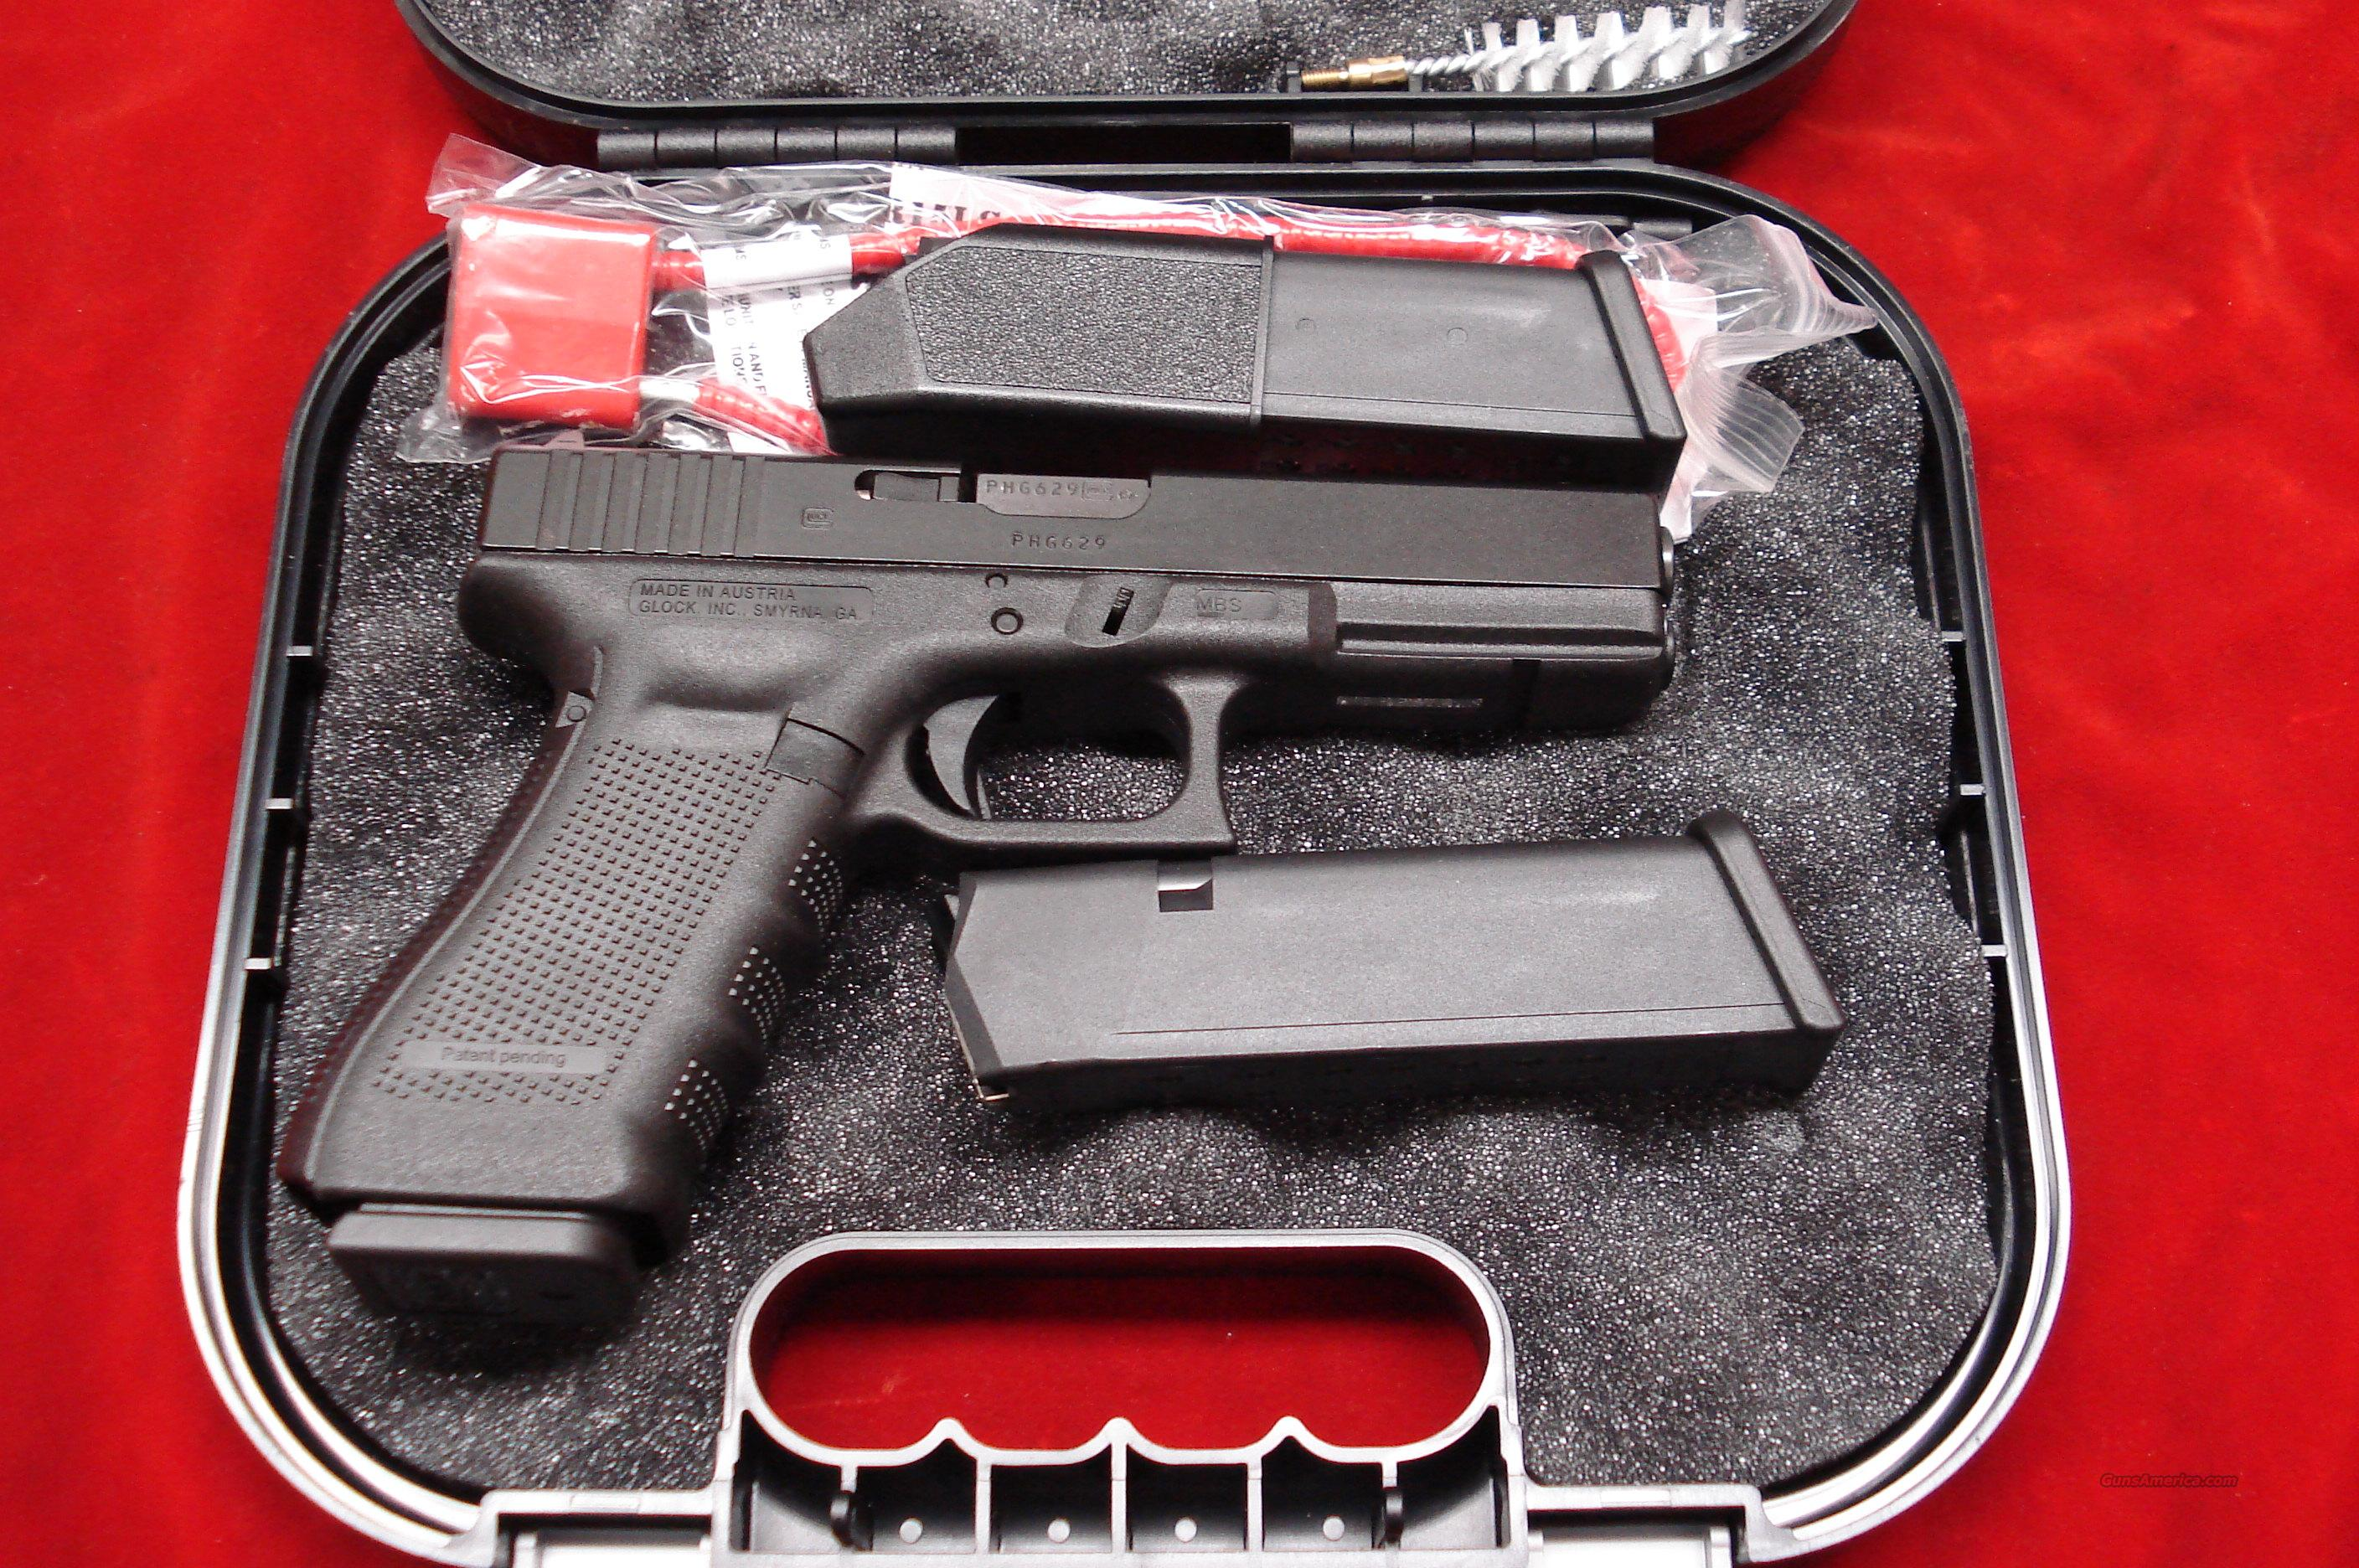 GLOCK NEW MODEL 17 GENERATION 4 9MM WITH  3 HIGH CAPACITY MAGAZINES NEW   Guns > Pistols > Glock Pistols > 17